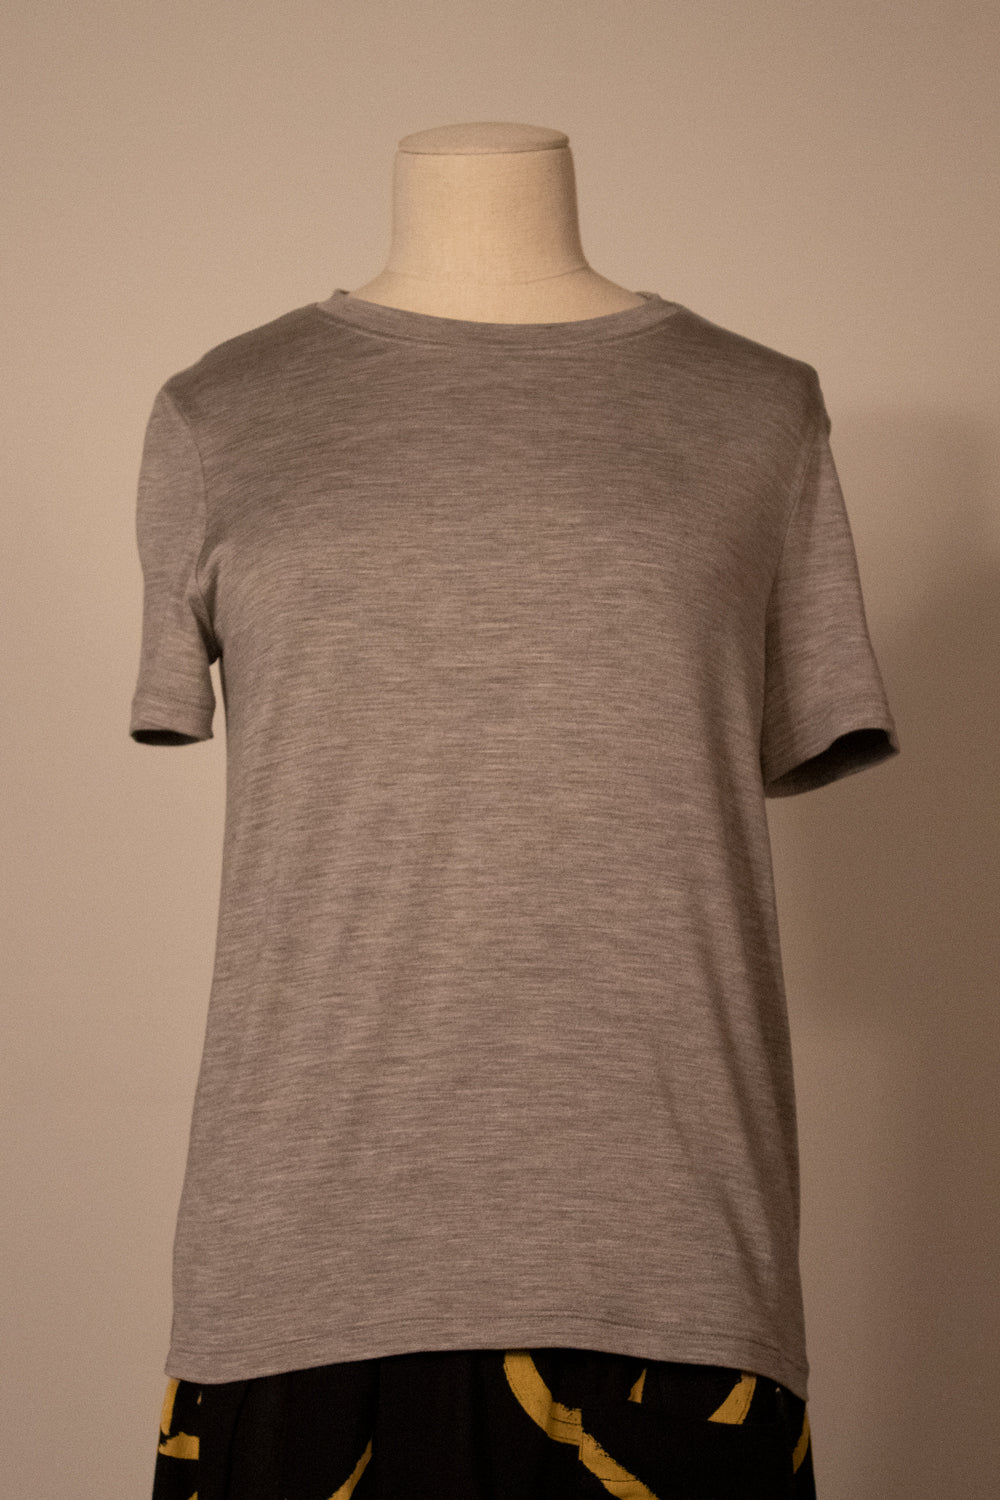 Hermès by Margiela light gray stretch silk tee